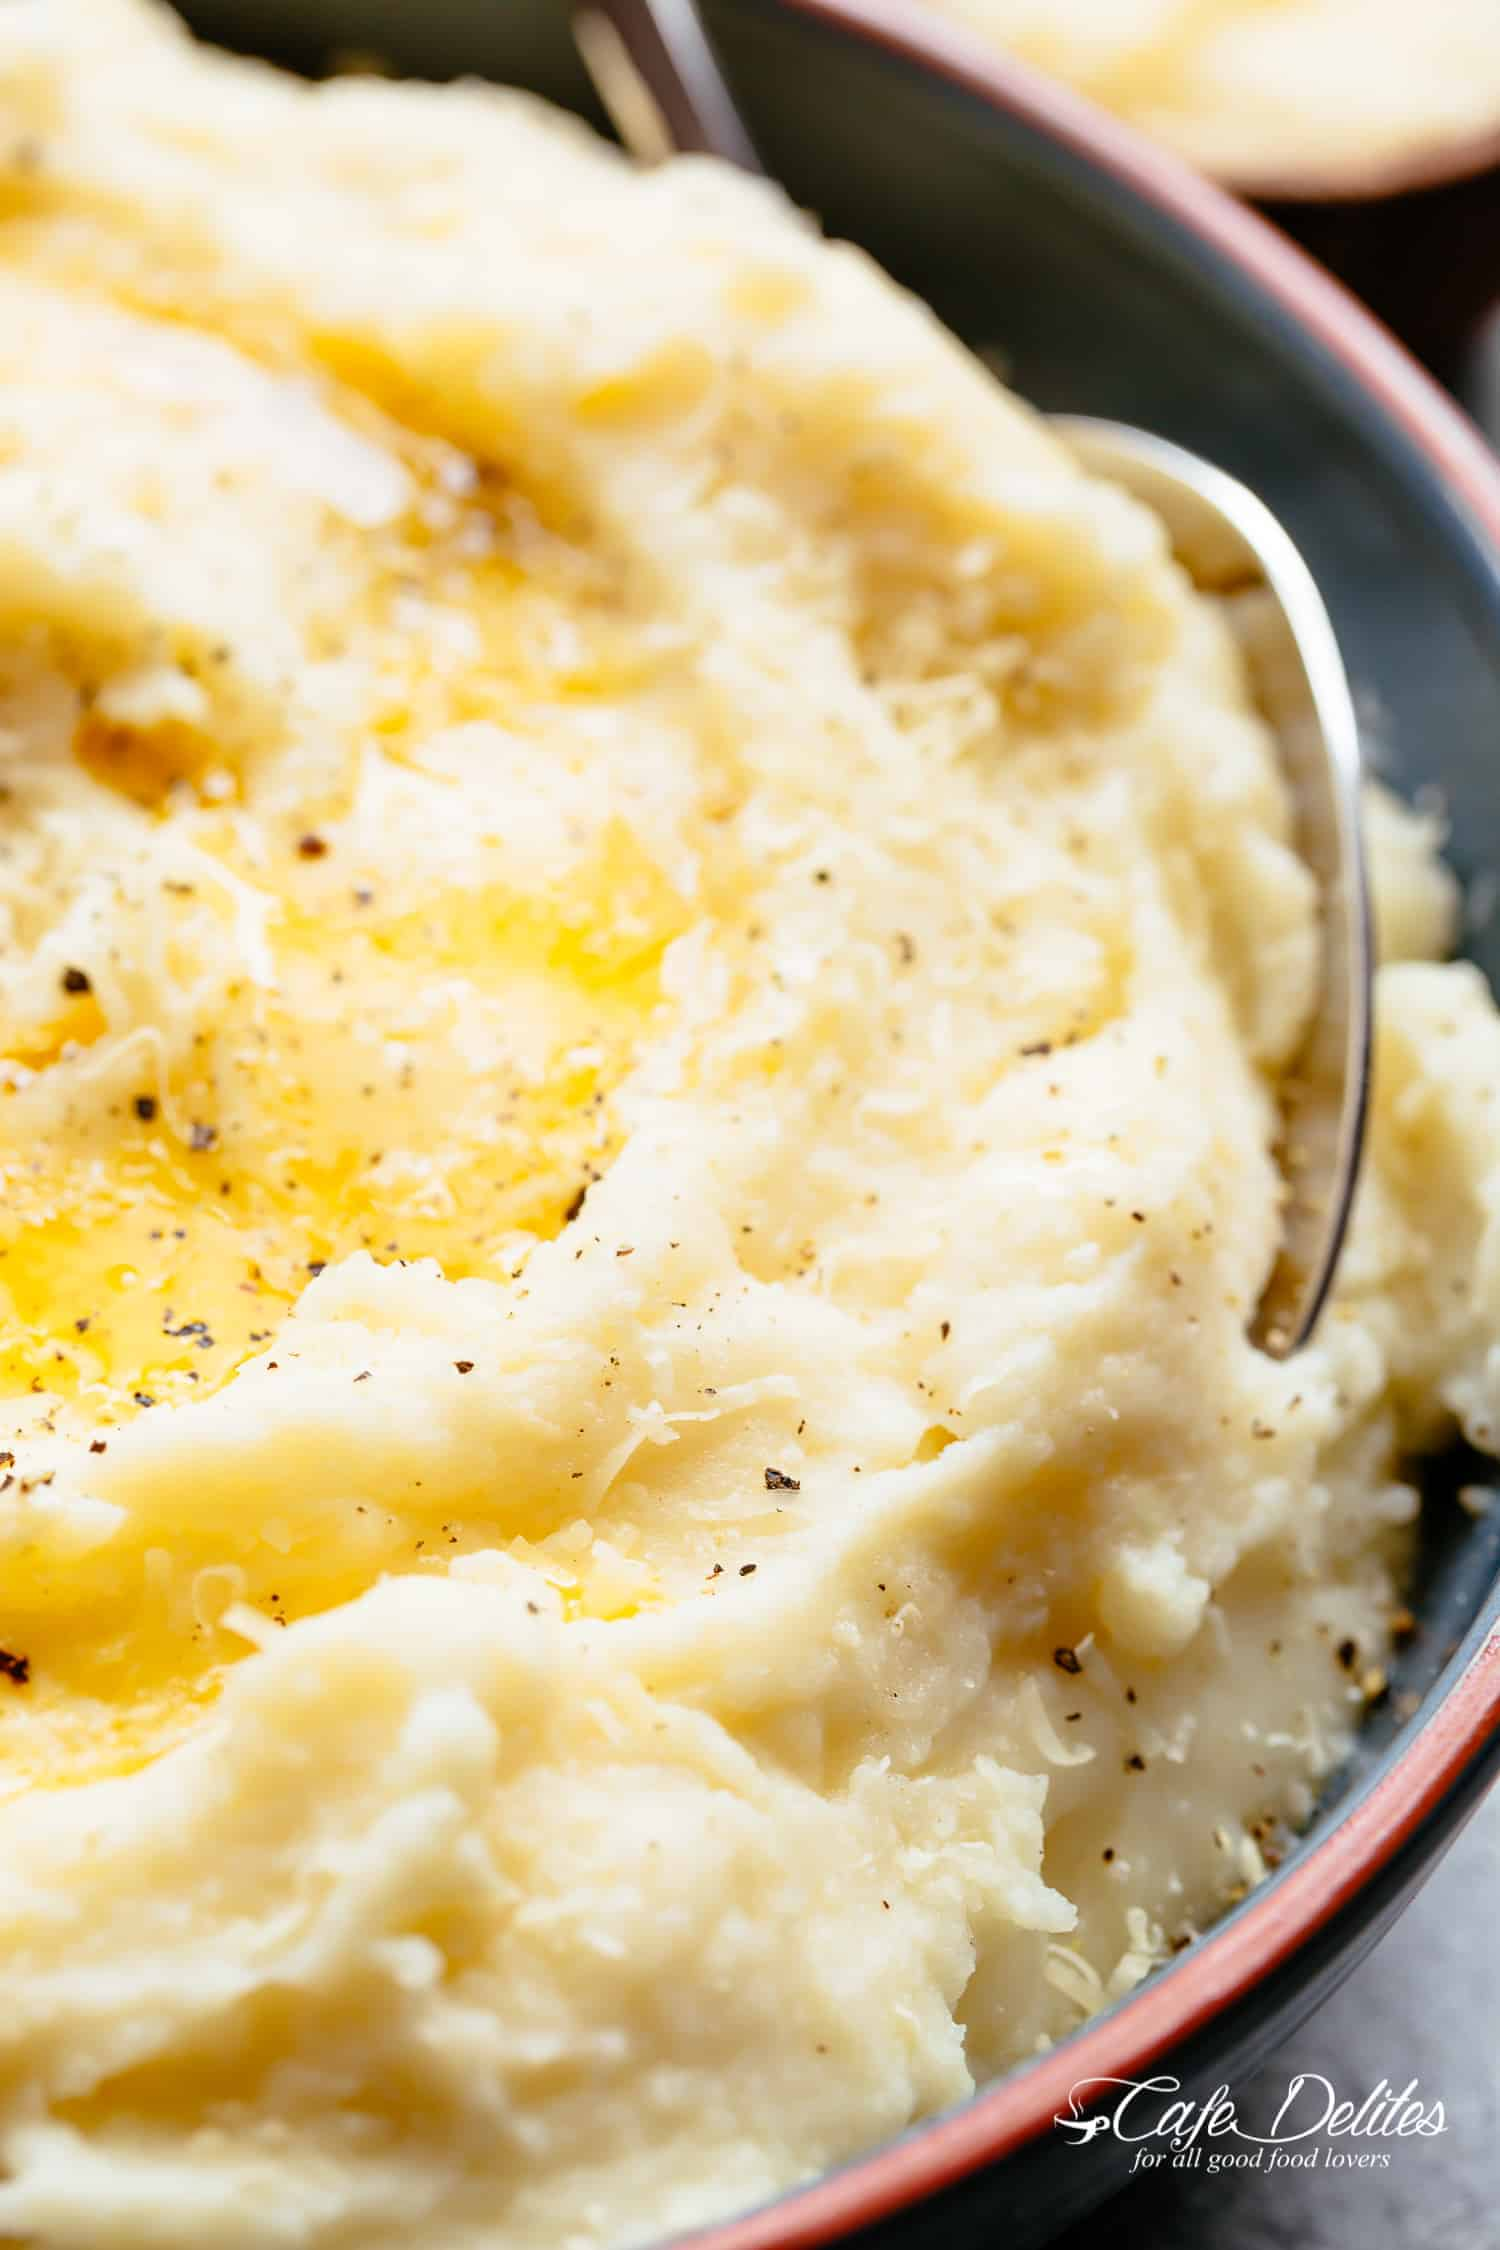 Keto approved CREAMY Mashed Cauliflower with Garlic, Sour Cream and Parmesan is the low carb side dish!